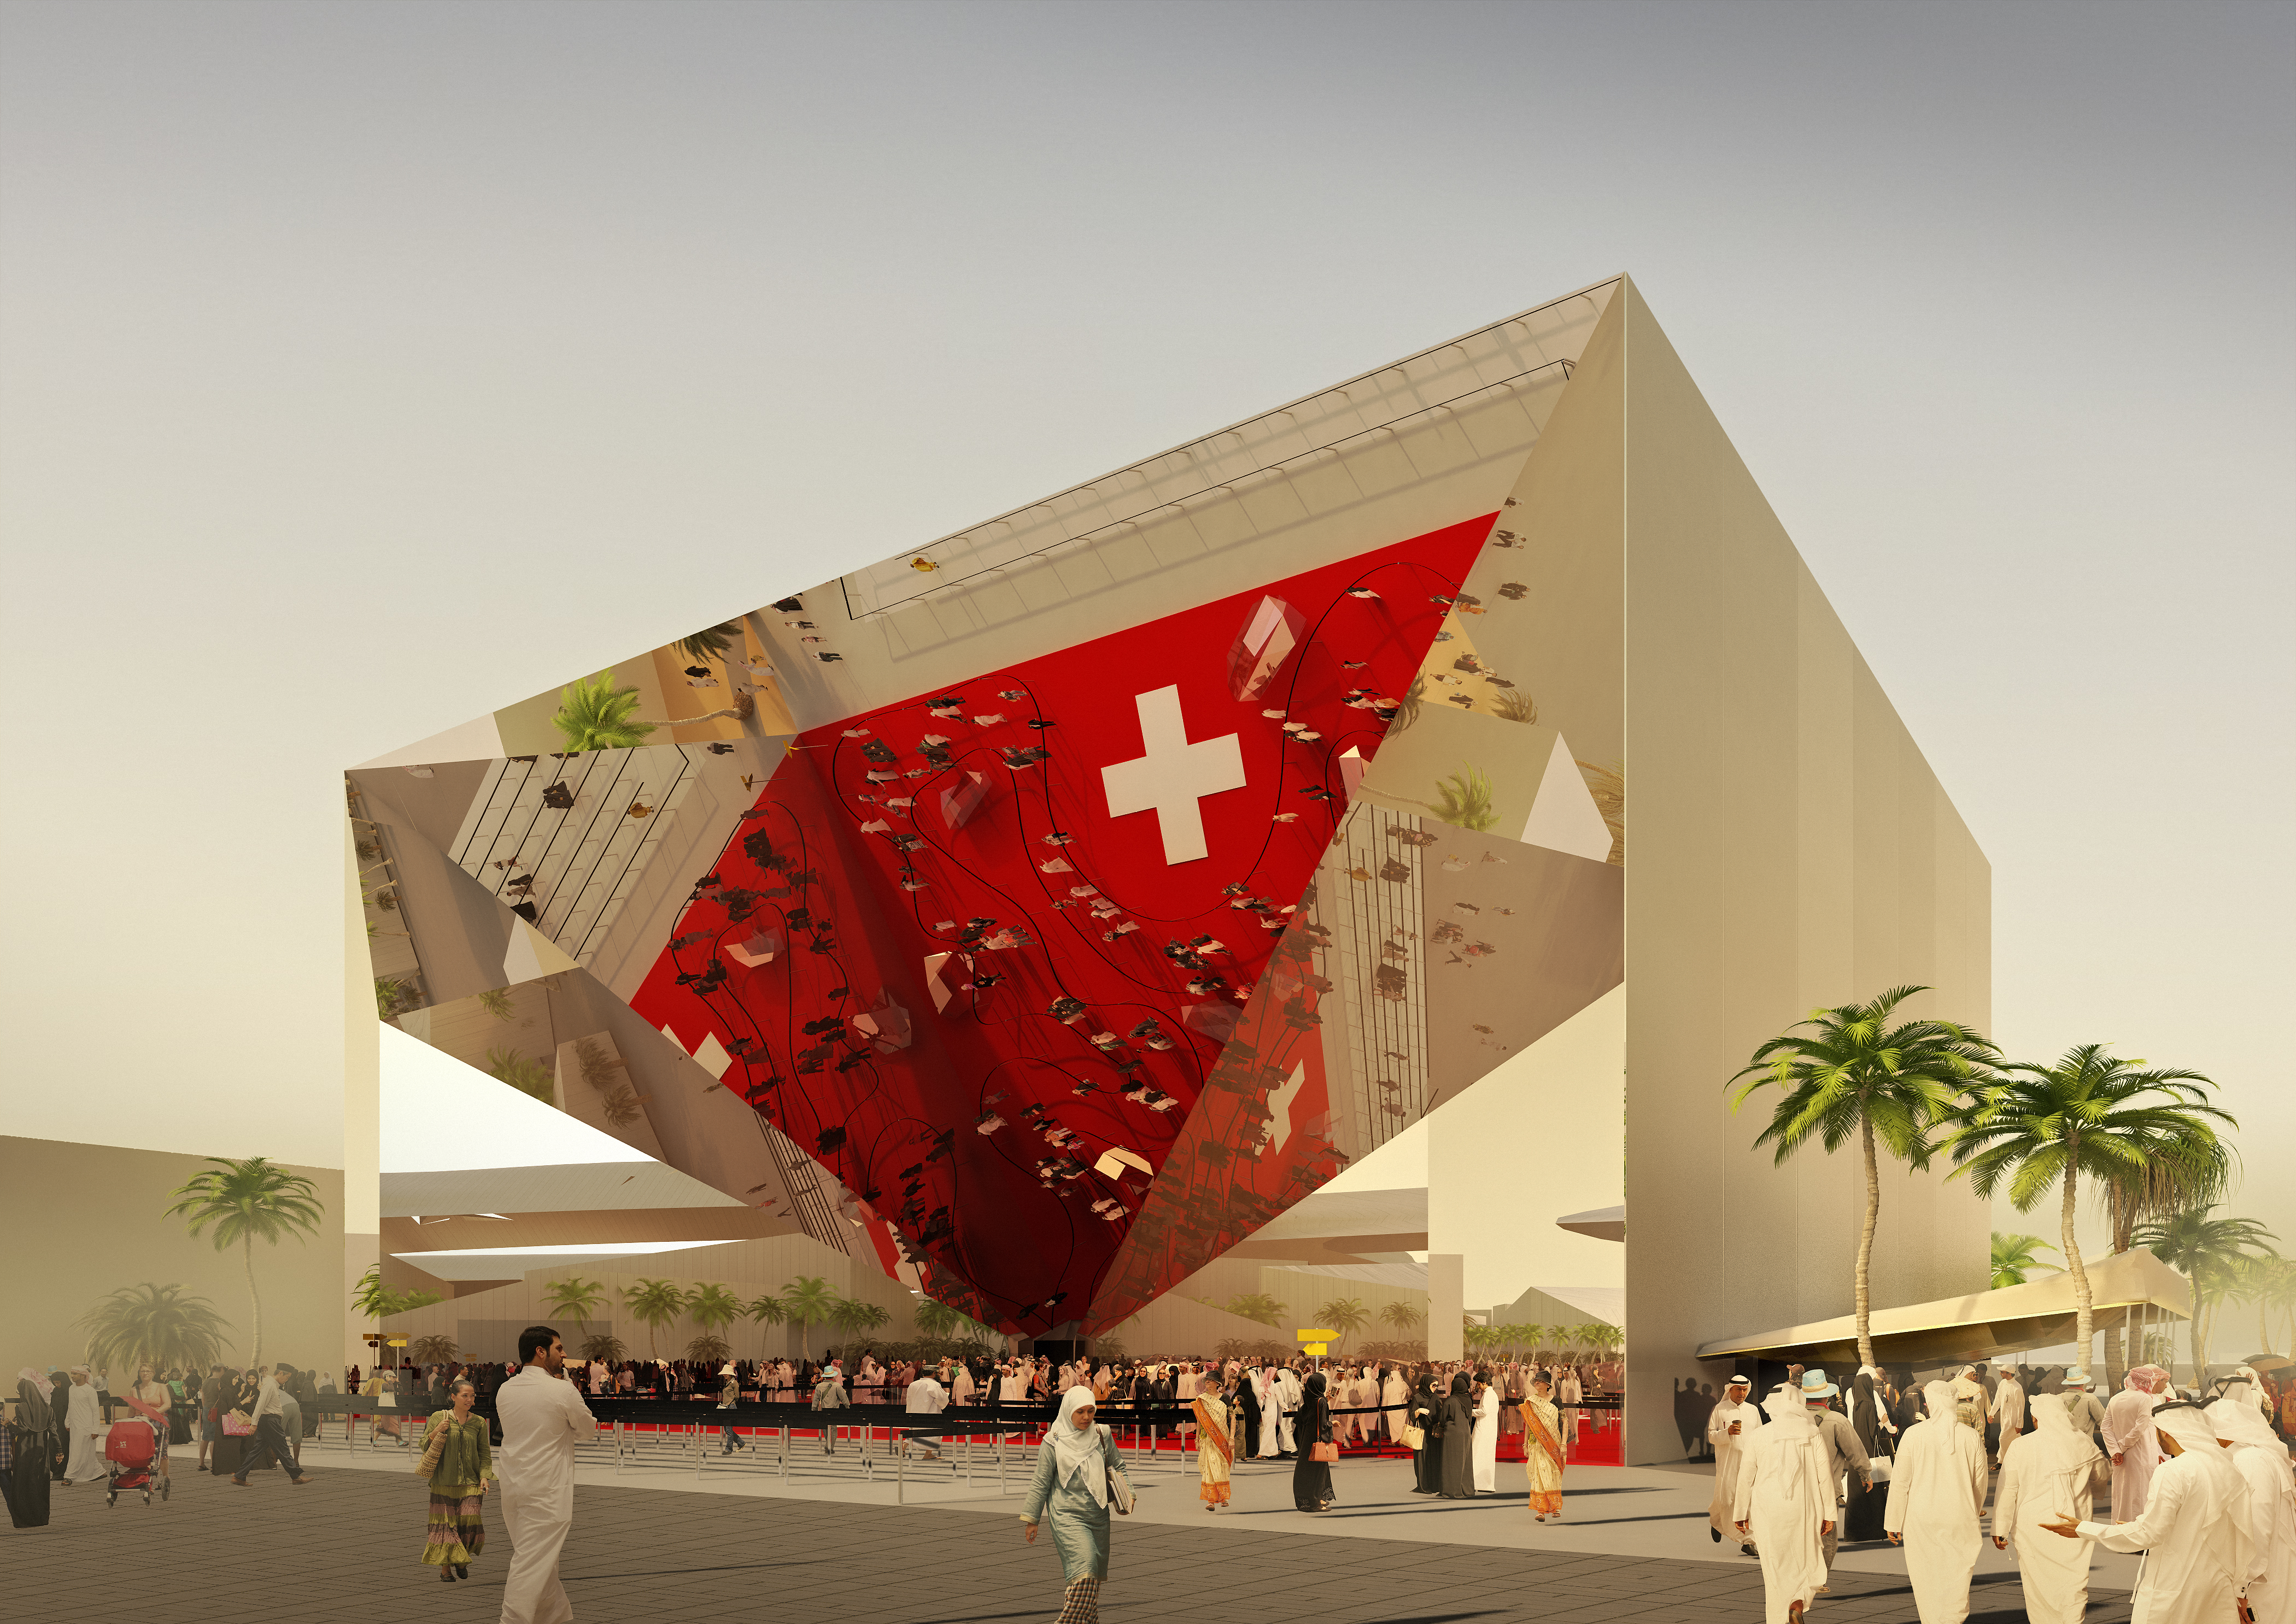 Expo 2020 Stands For : Green light for the swiss pavilion at expo in dubai